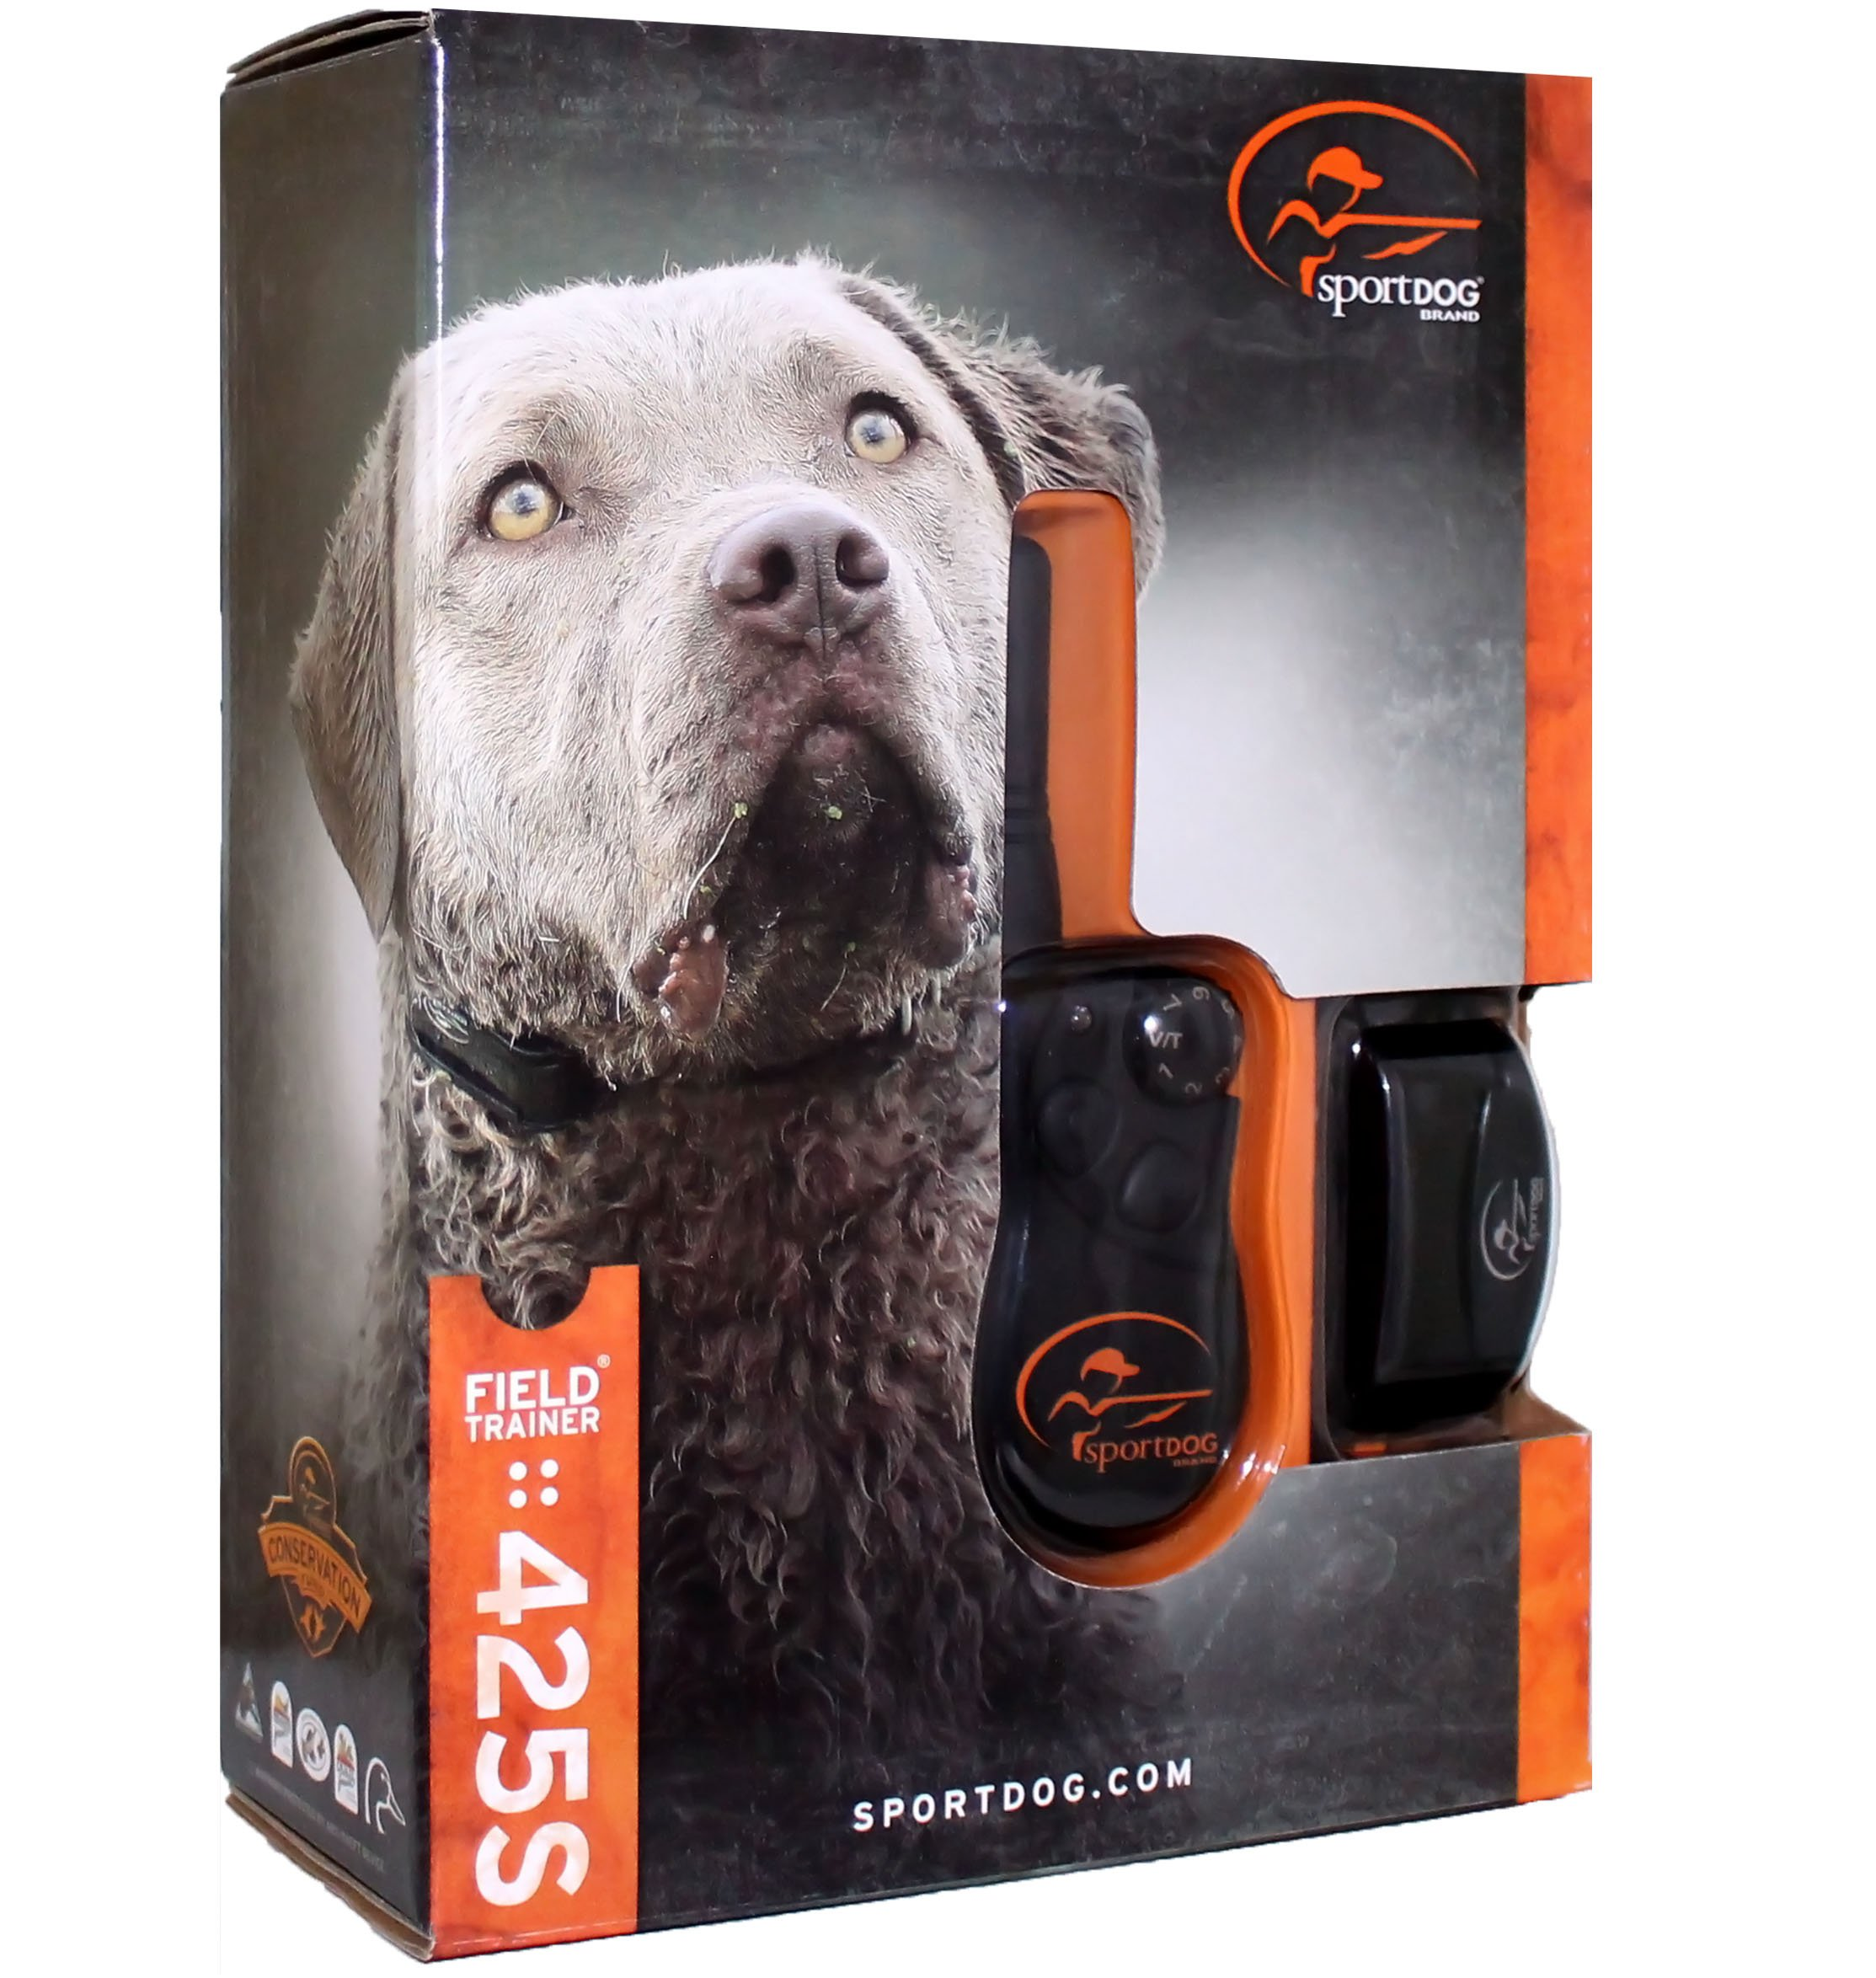 SportDOG Brand FieldTrainer 425S Stubborn Dog Remote Trainer - 500 Yard Range - Waterproof, Rechargeable Training Collar with Tone, Vibration, and Shock by SportDOG Brand